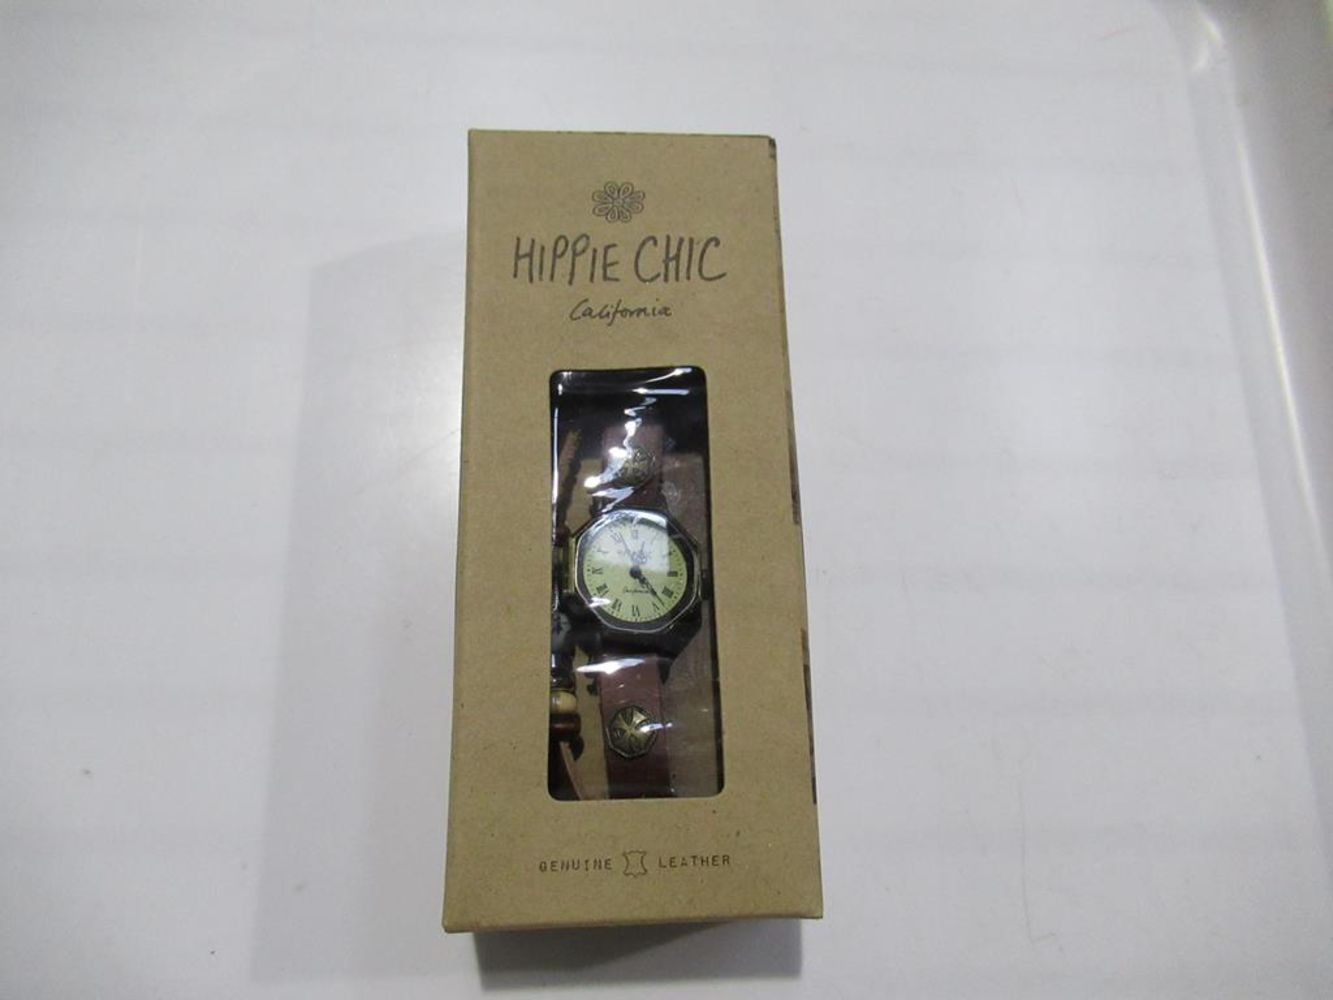 Watches and Accessories Stock inc Hippie Chic, Breo and Kartel